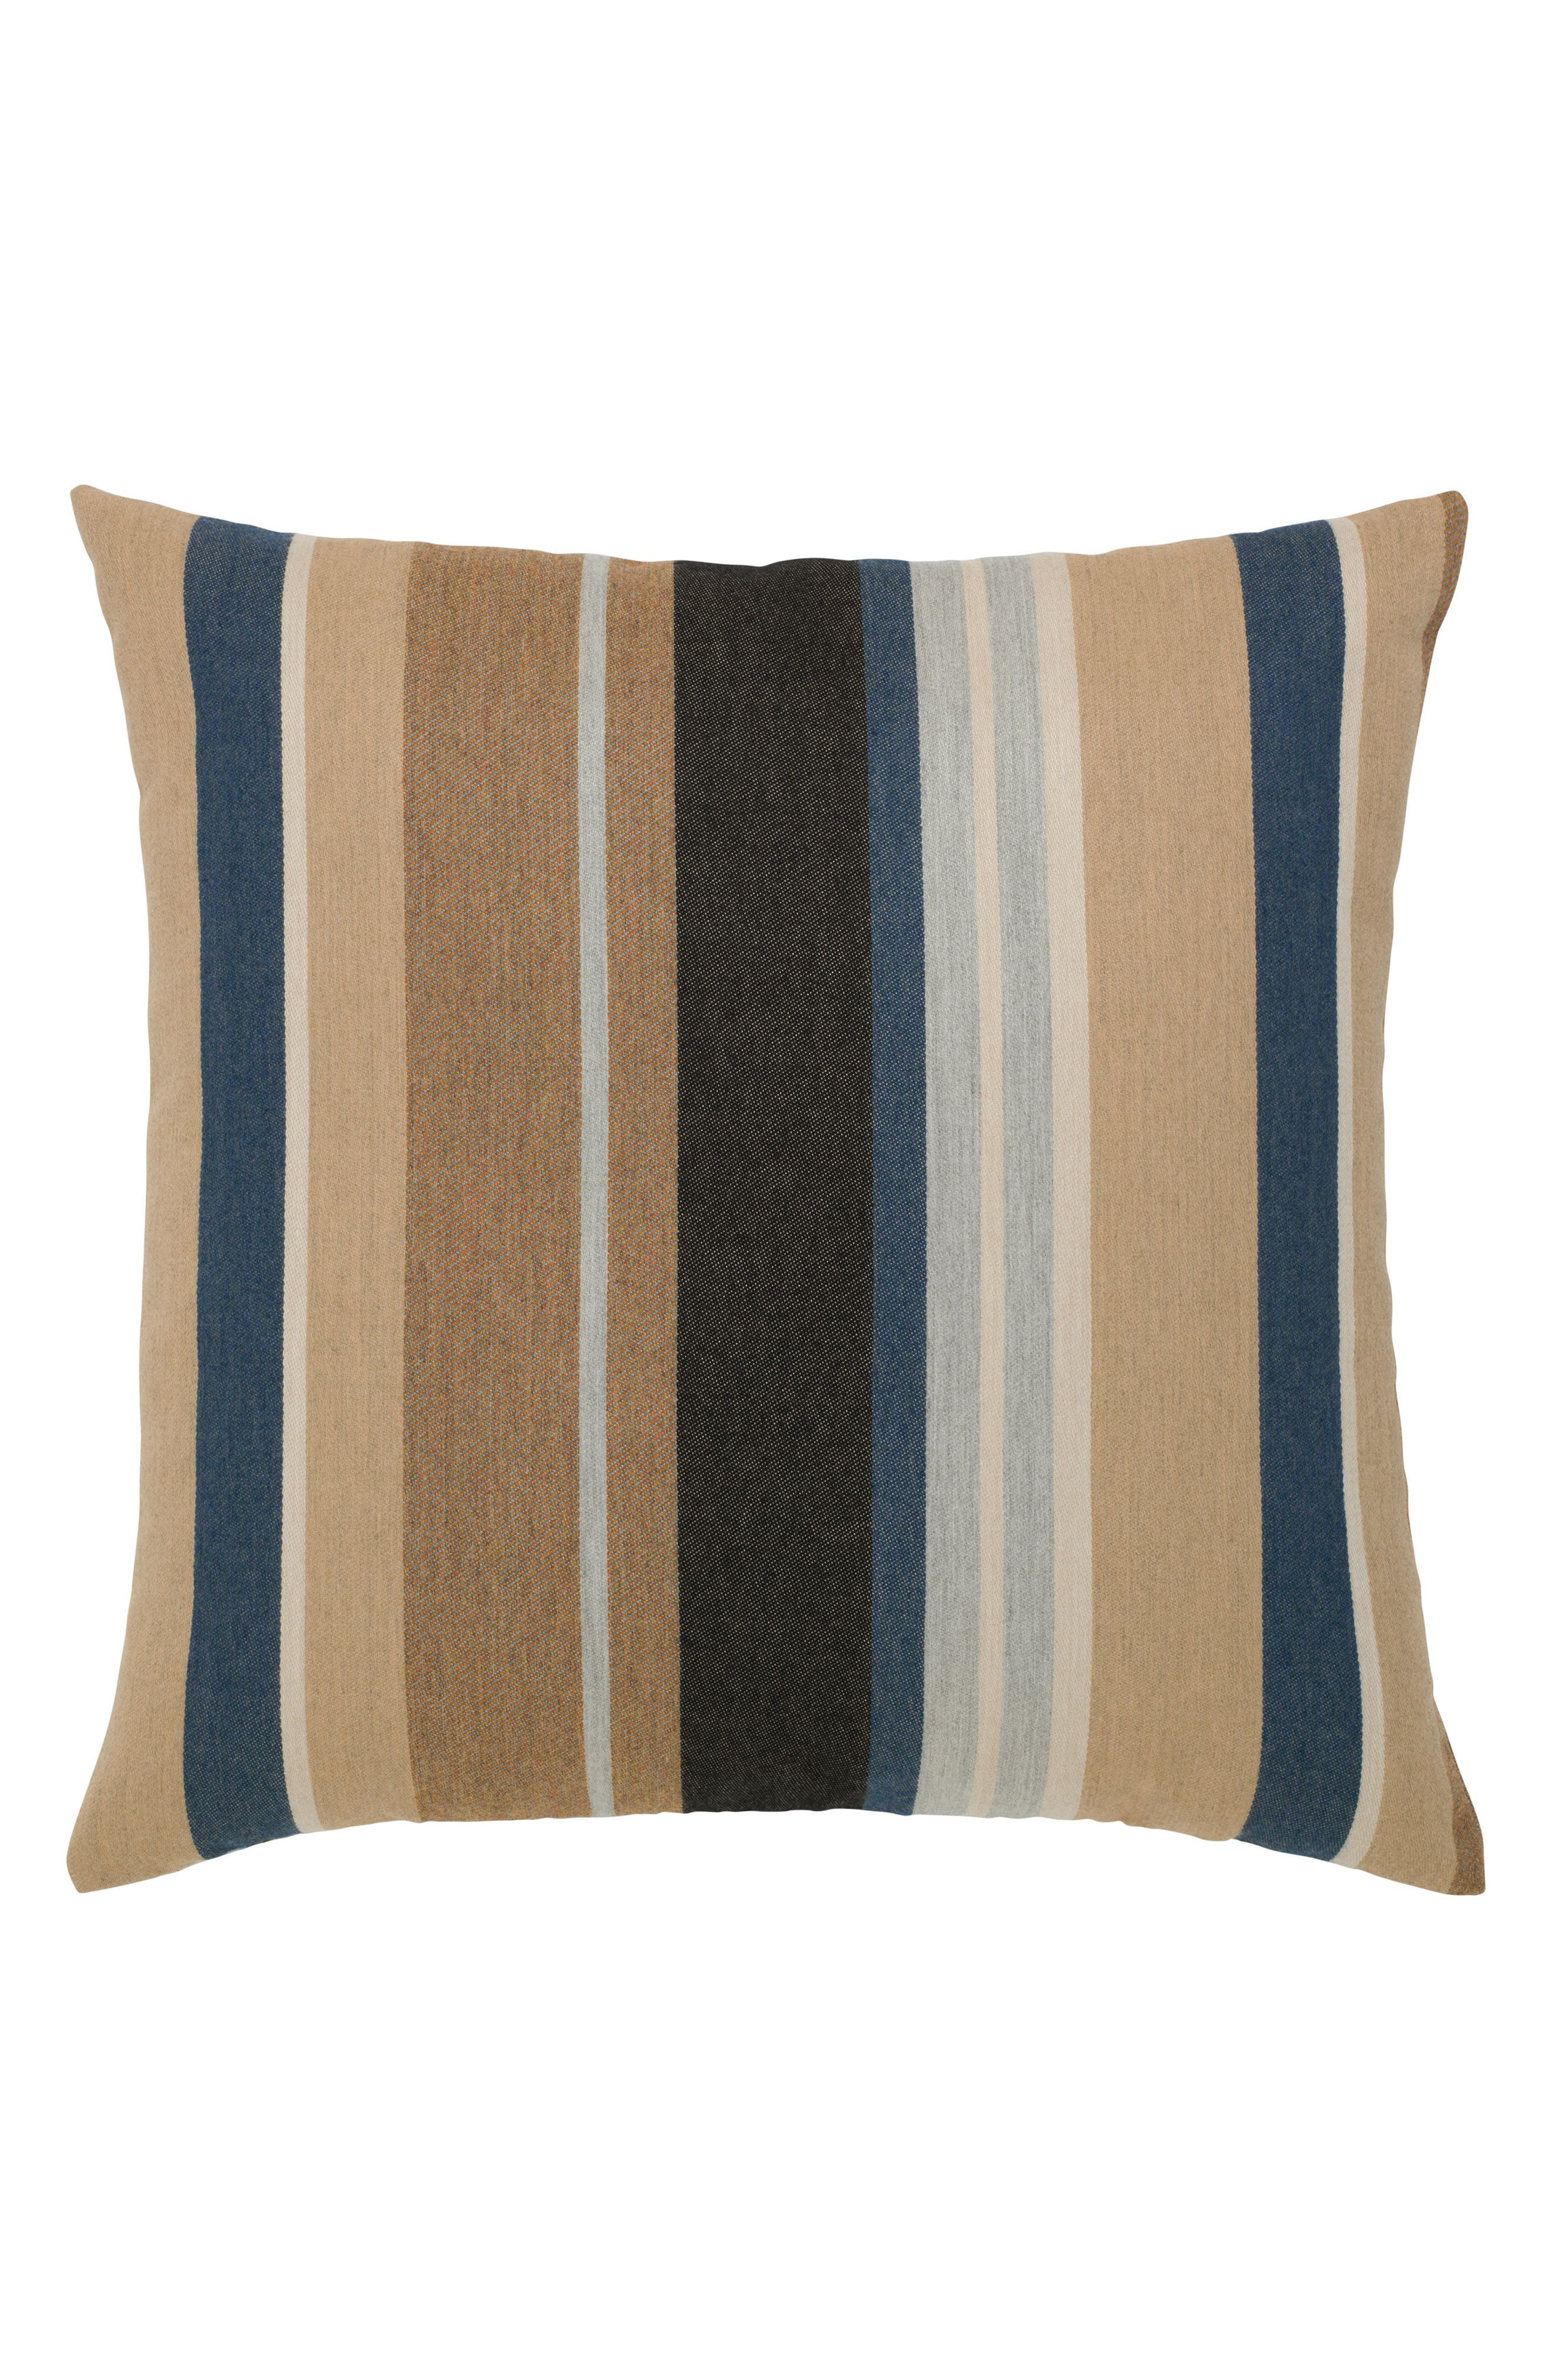 Reflection Indoor/Outdoor Accent Pillow,                         Main,                         color, 200